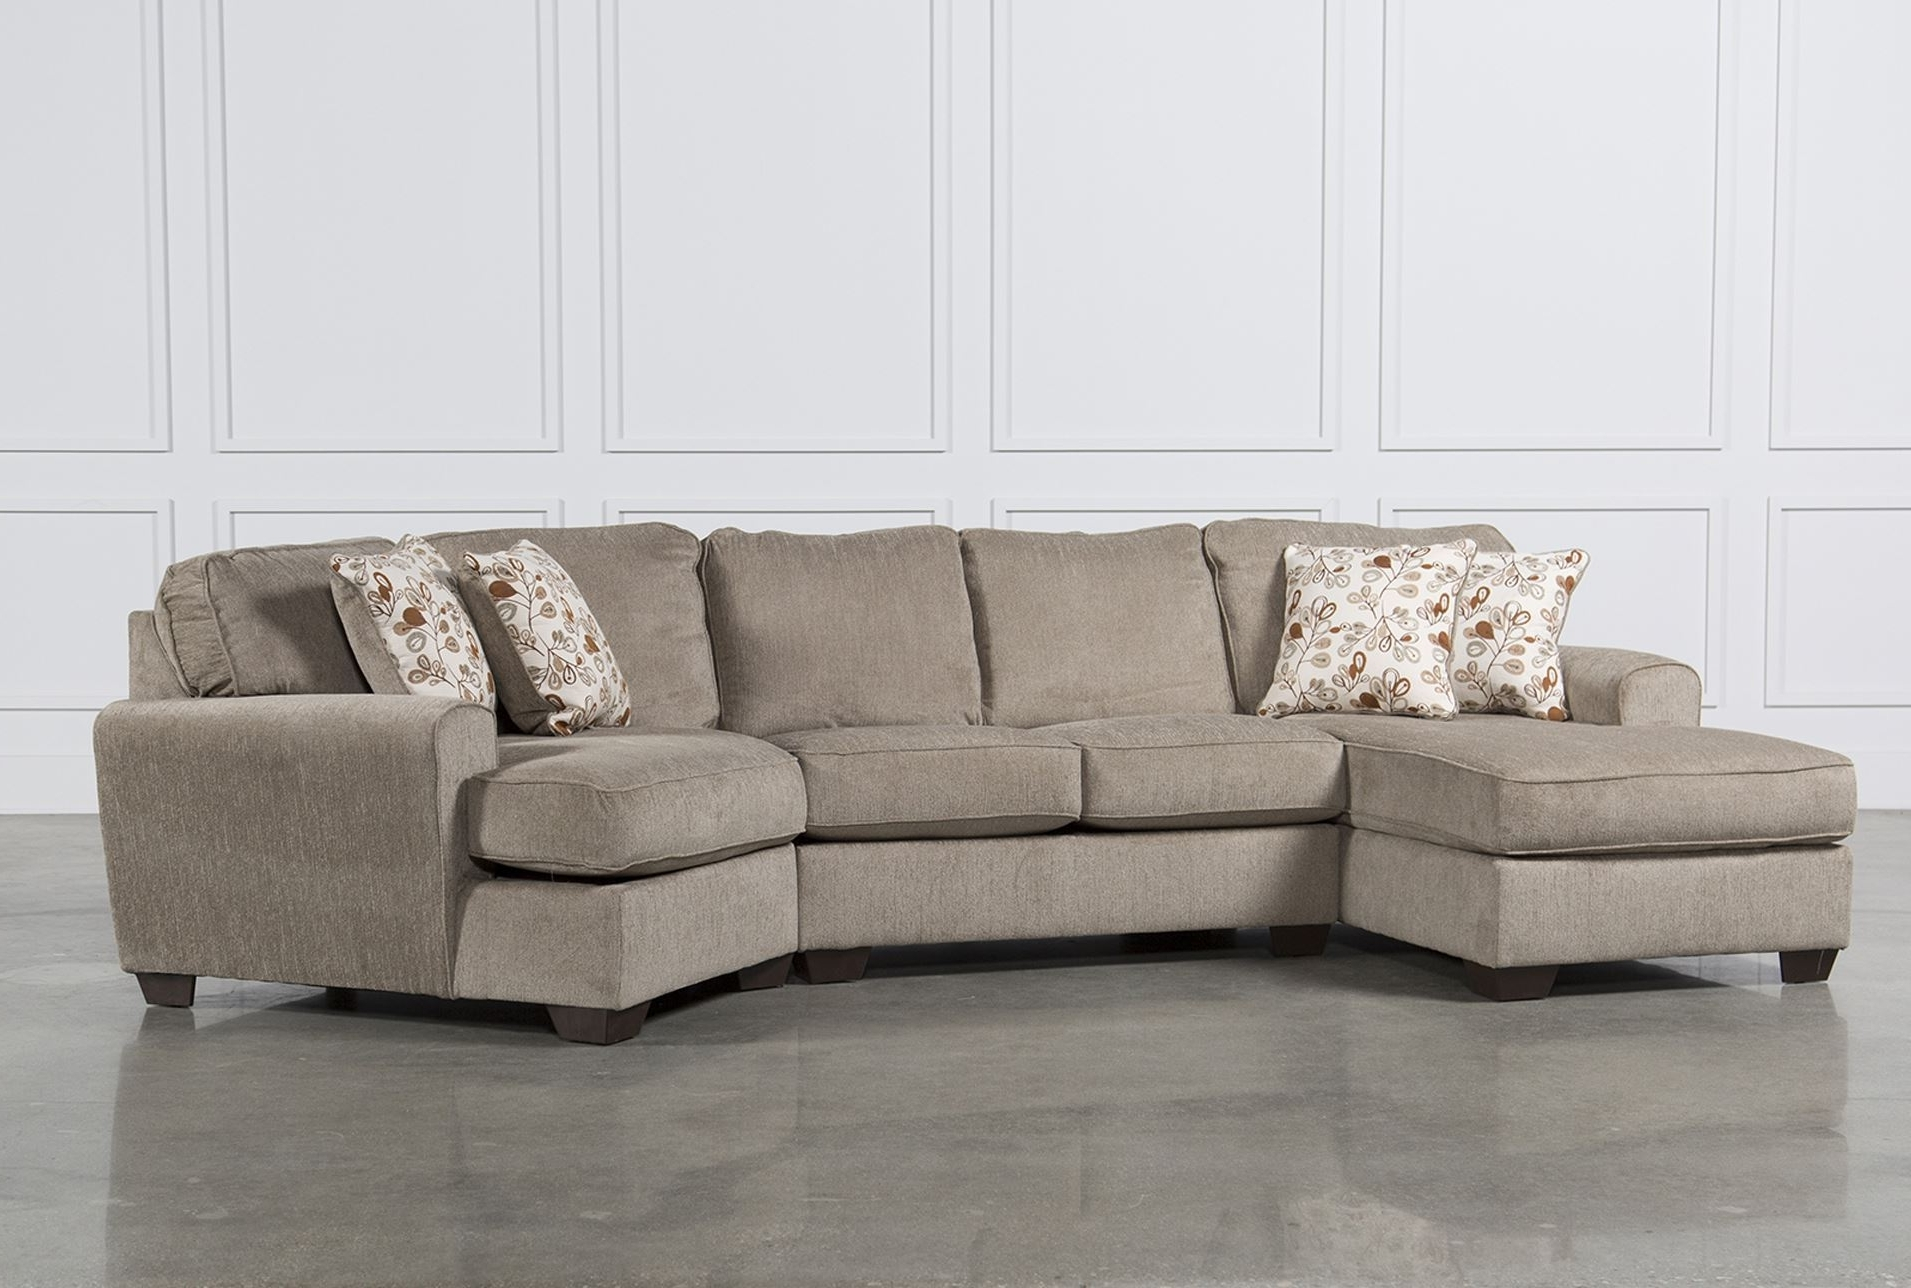 Cuddler Sectional Sofas Regarding Best And Newest Fancy Sectional Sofa With Cuddler 52 For Contemporary Sofa (View 3 of 15)